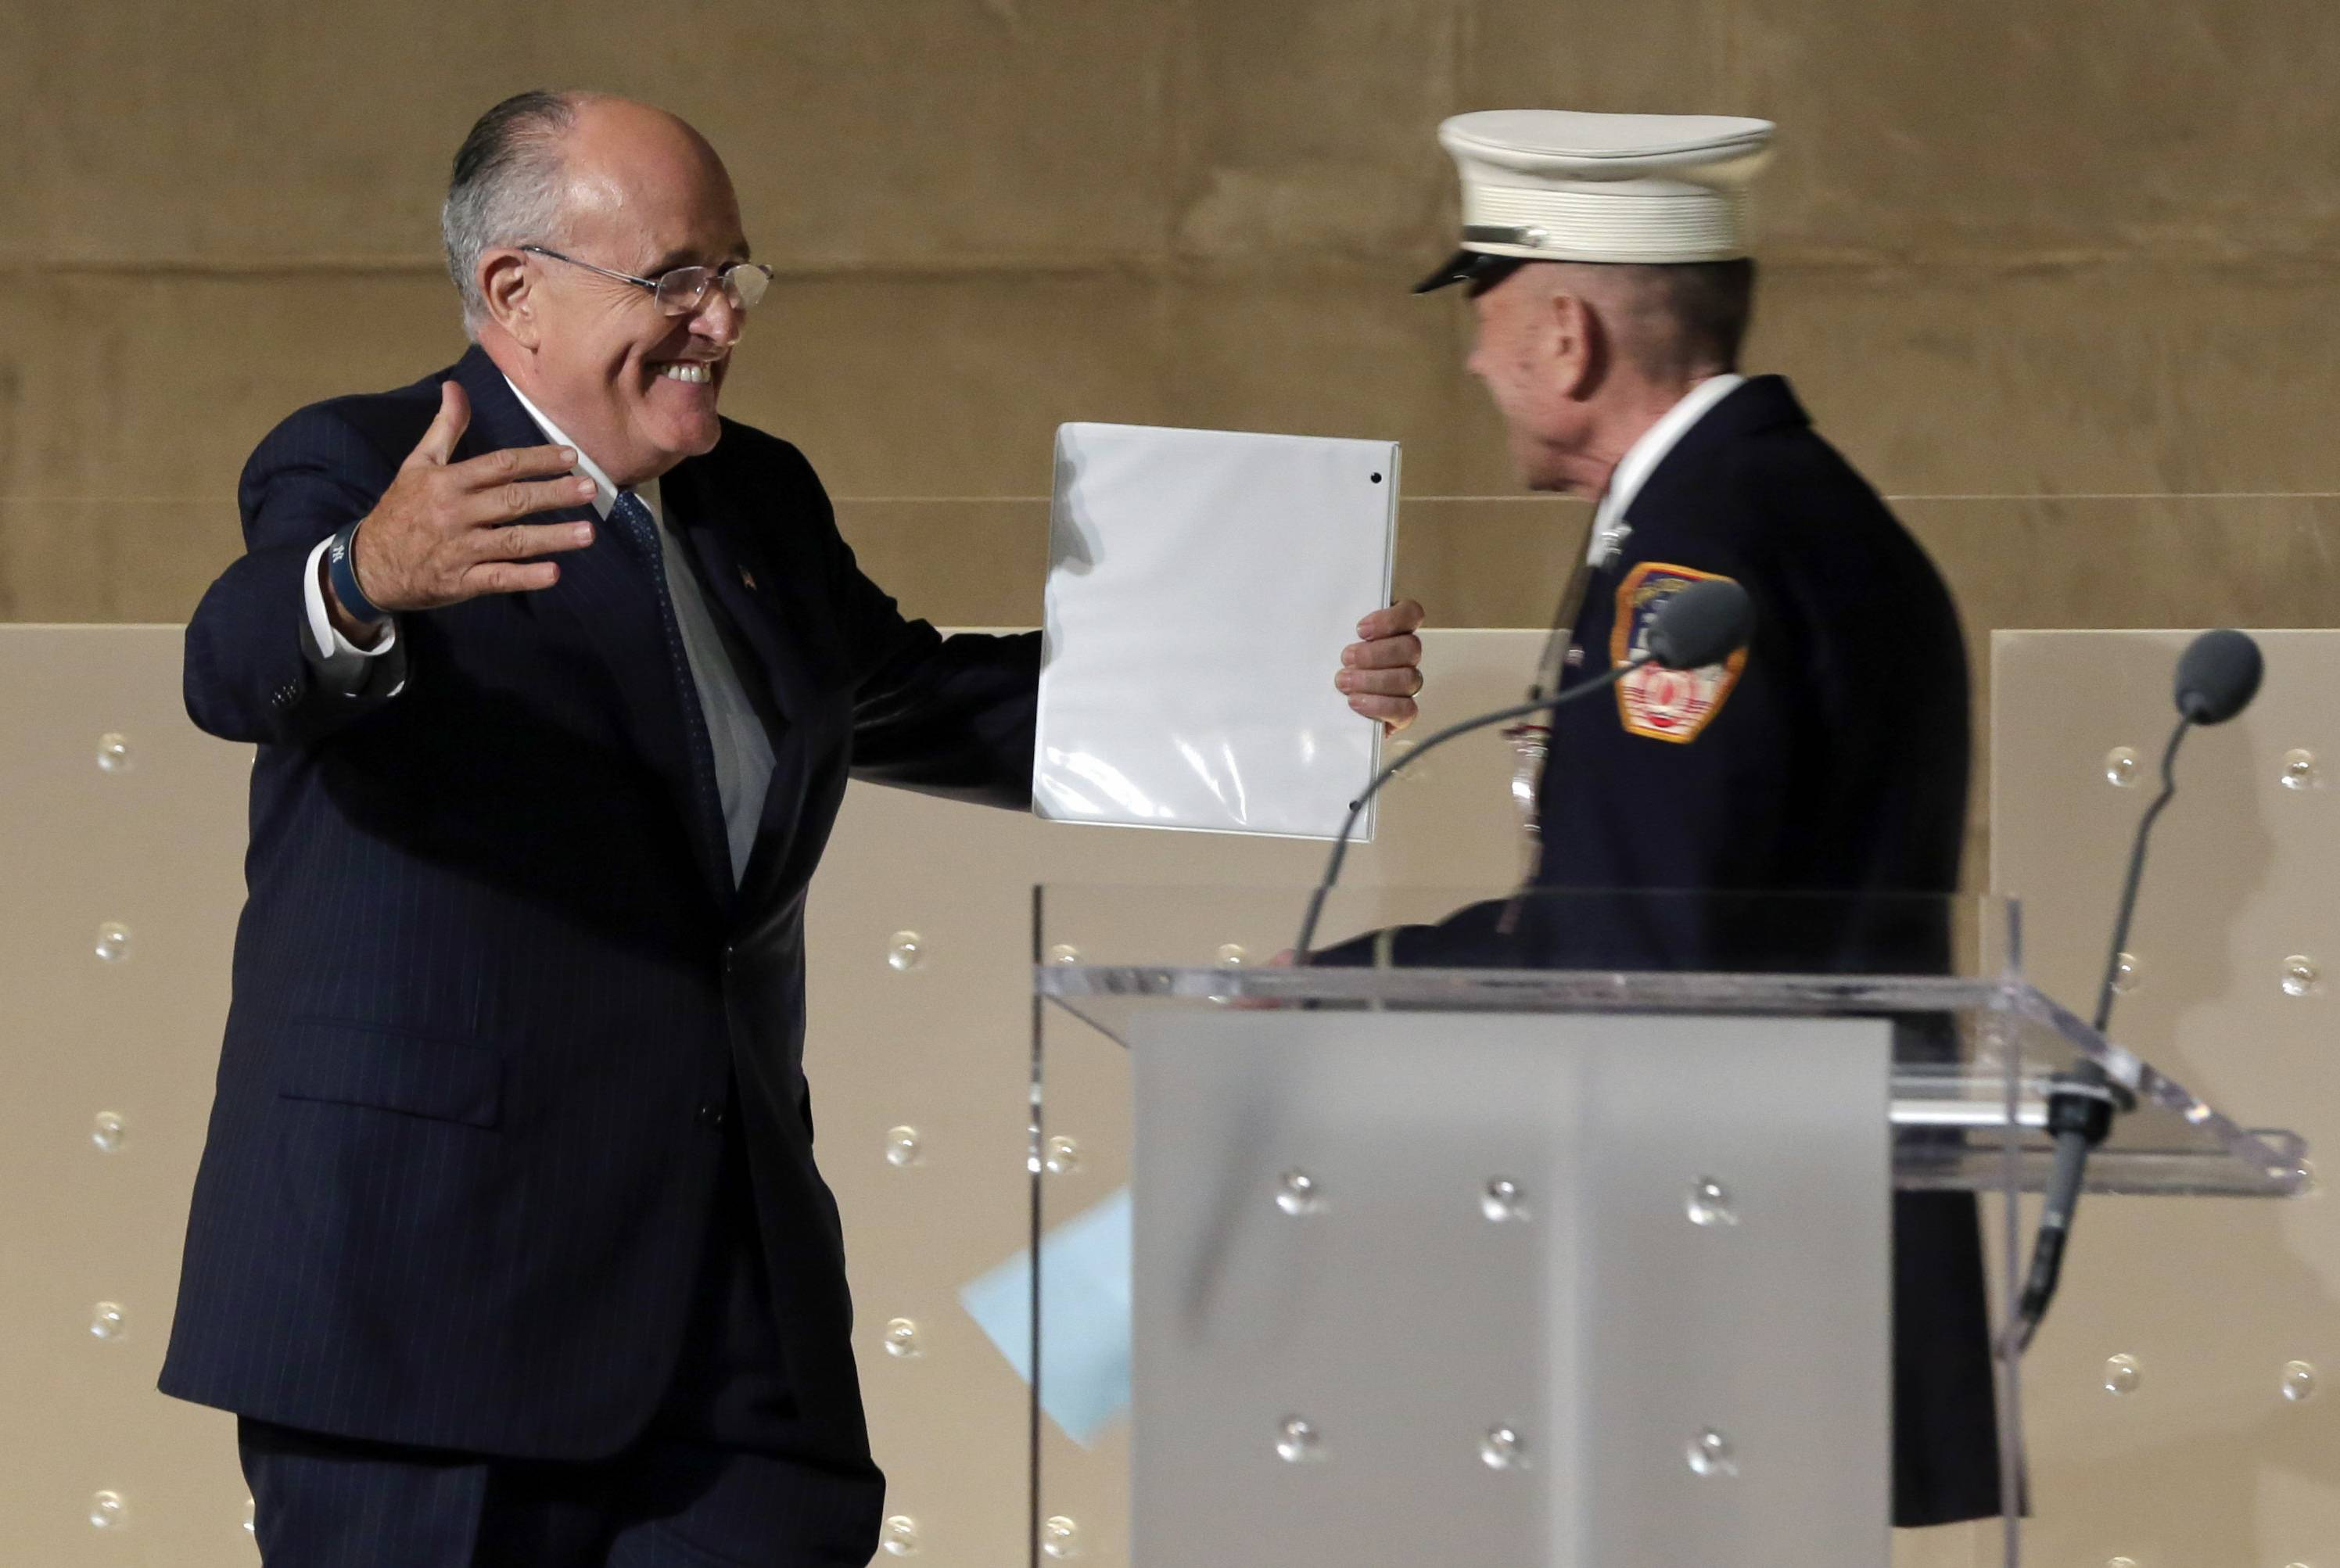 Former New York Mayor Rudolph Giuliani, left, greets New York City firefighter Mickey Kross before his speech during the dedication ceremony in Foundation Hall, of the National September 11 Memorial Museum.